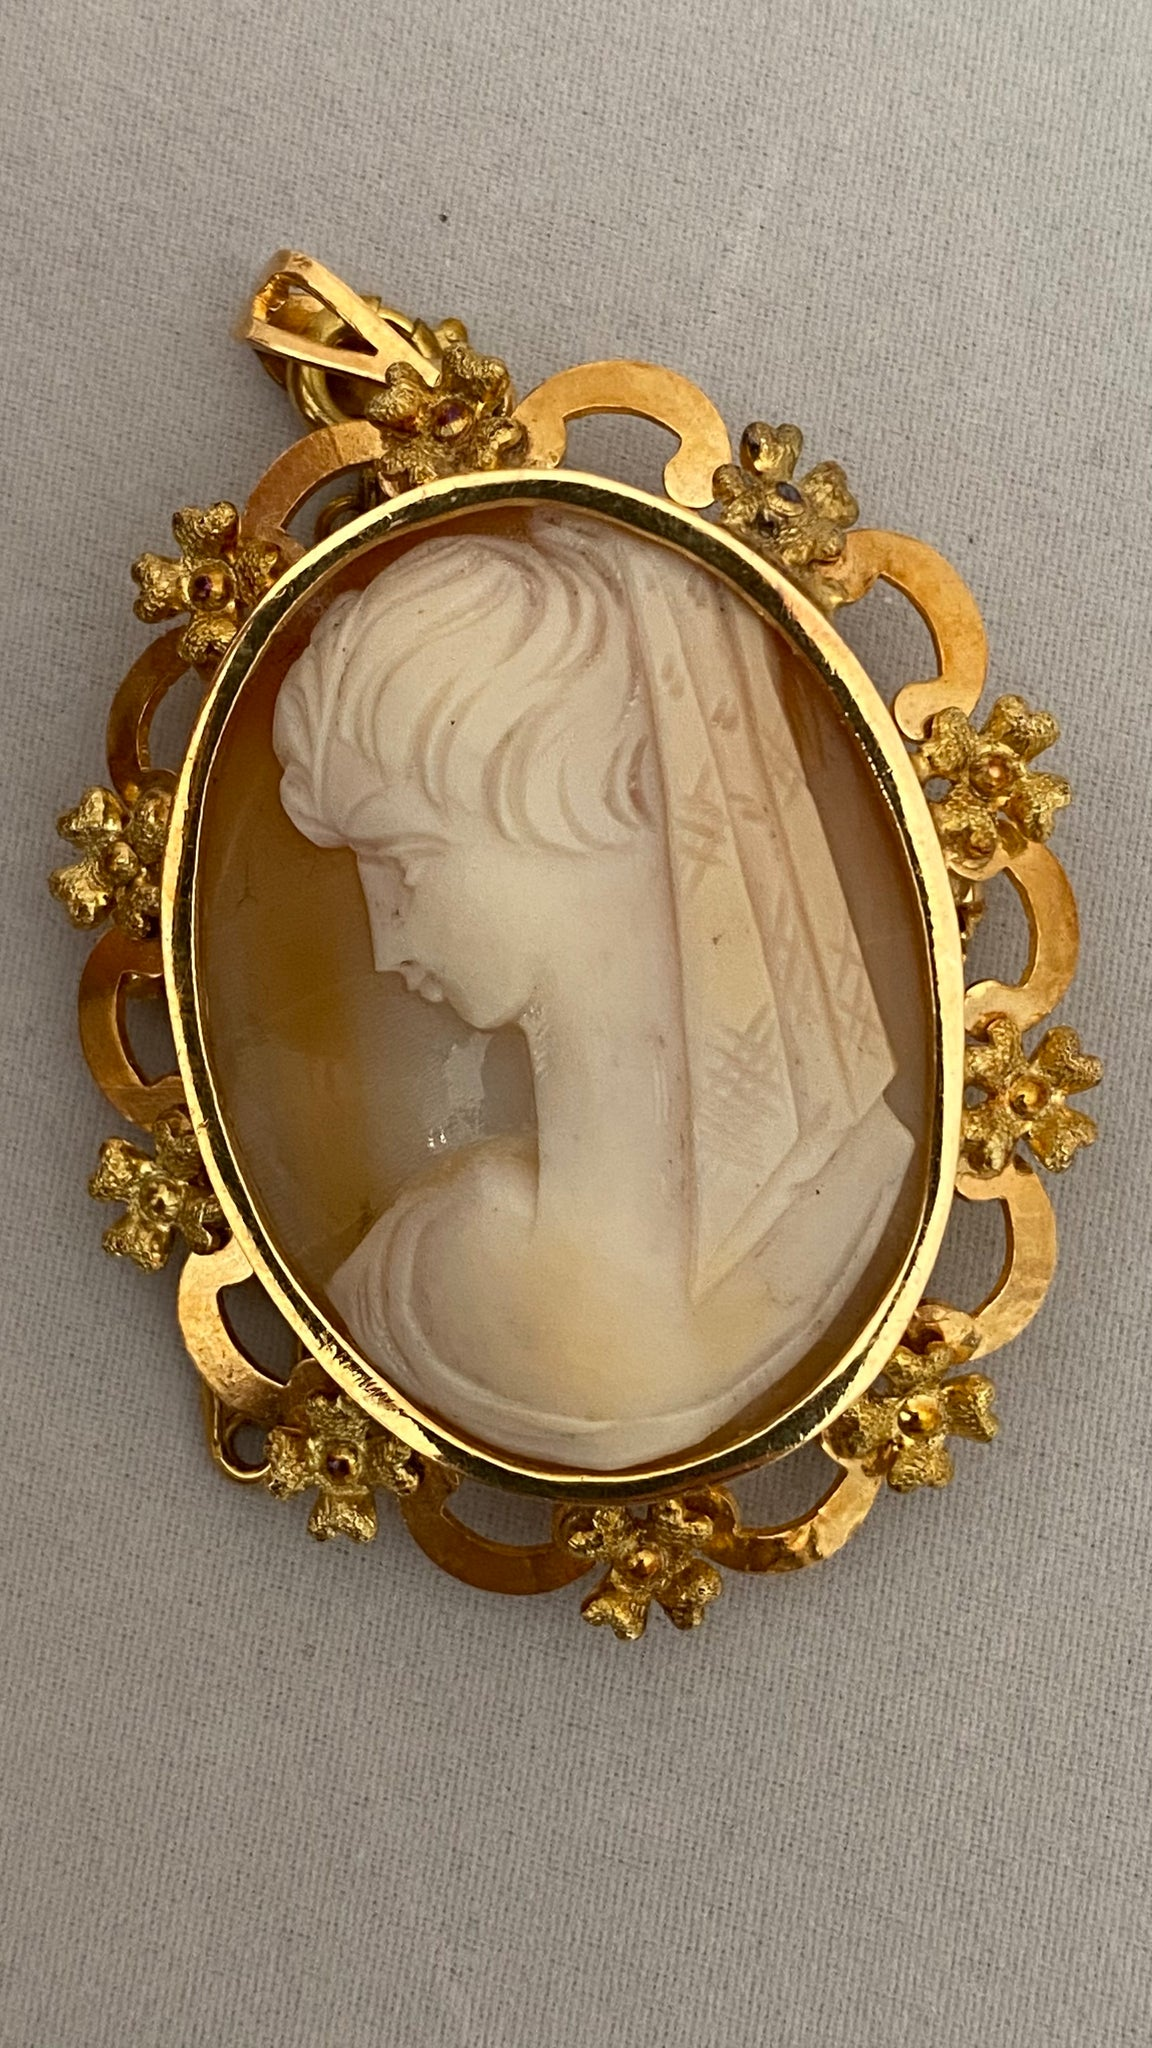 Italy 725 Gold Cameo Brooch c.1950